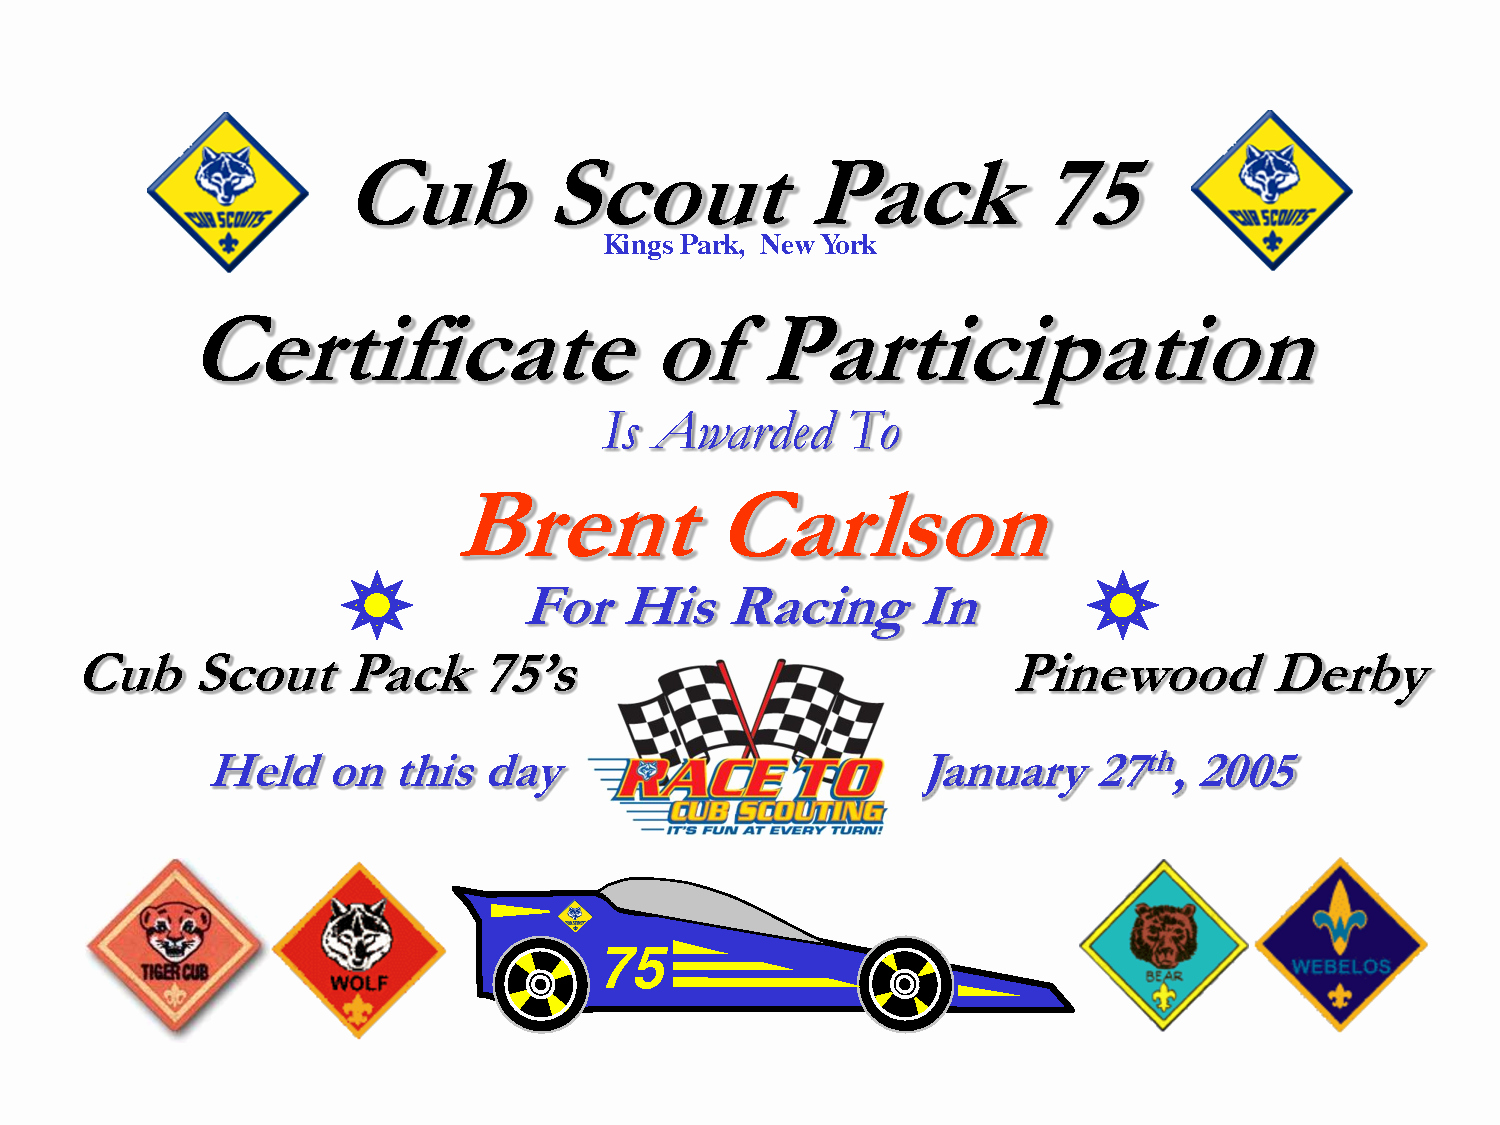 image about Free Printable Pinewood Derby Certificates identify 8 Perfect Of Cub Scout Printable Certification Cub Latter